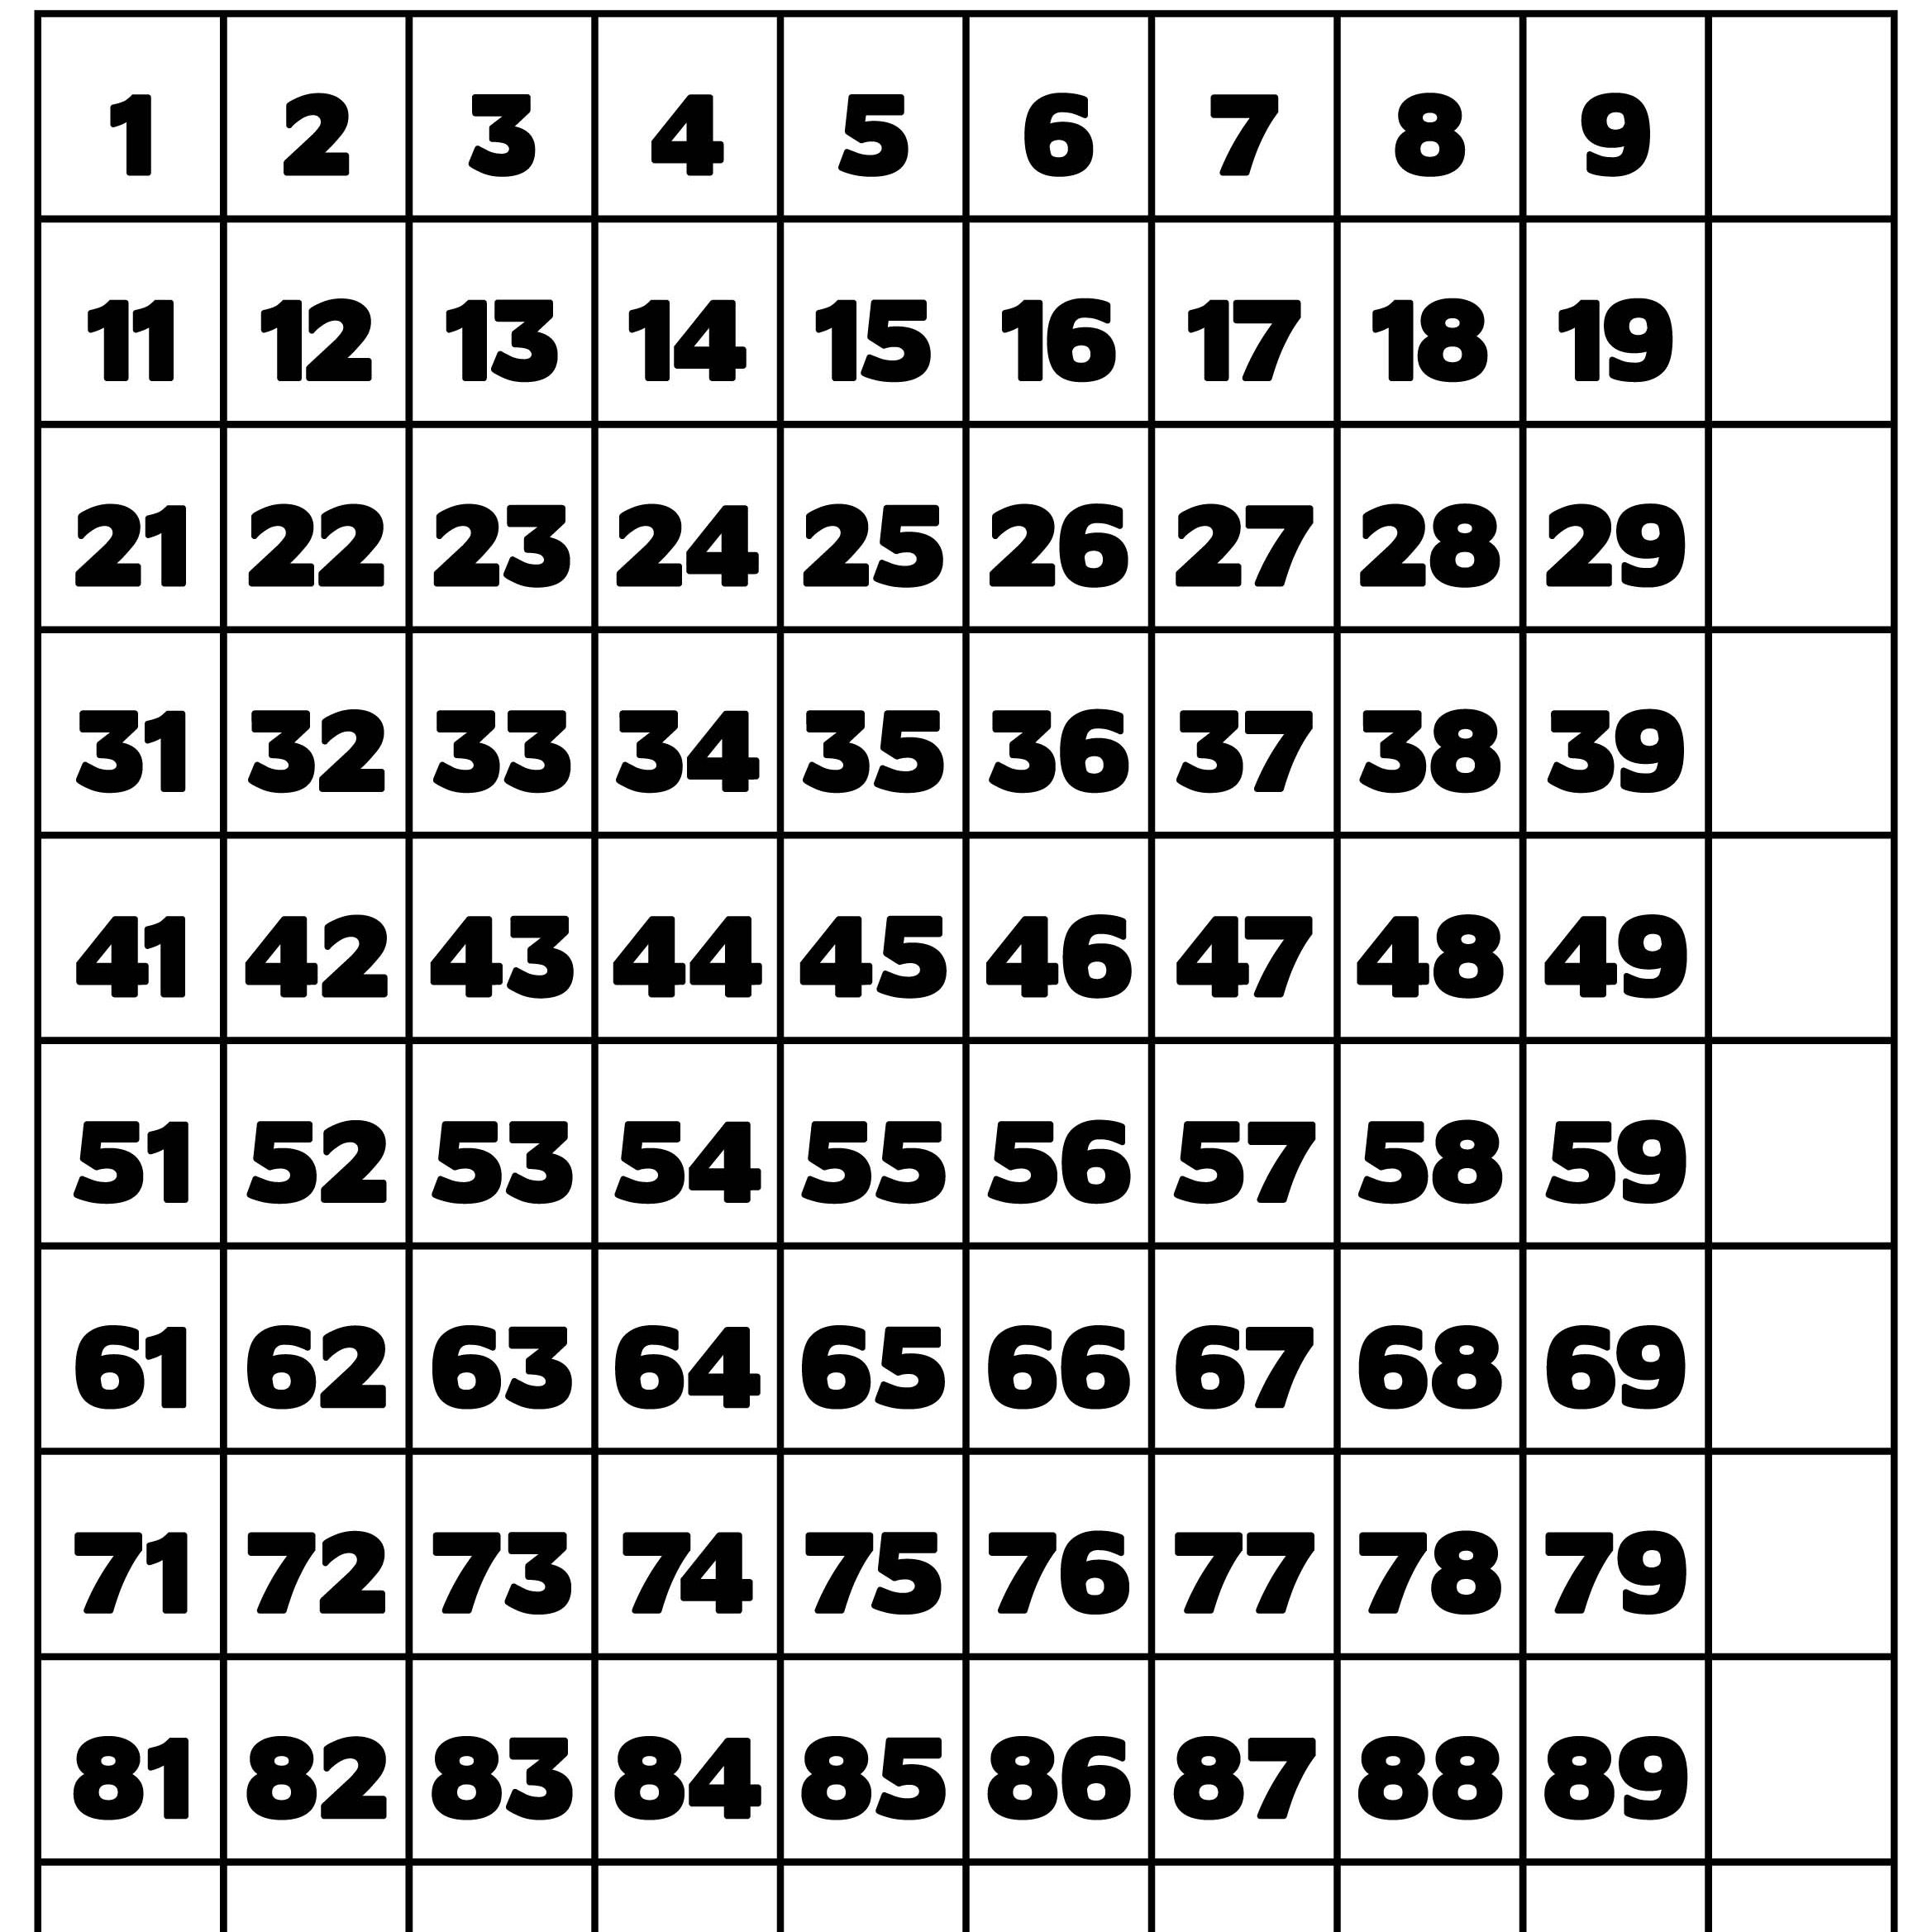 A hundred chart for skip counting